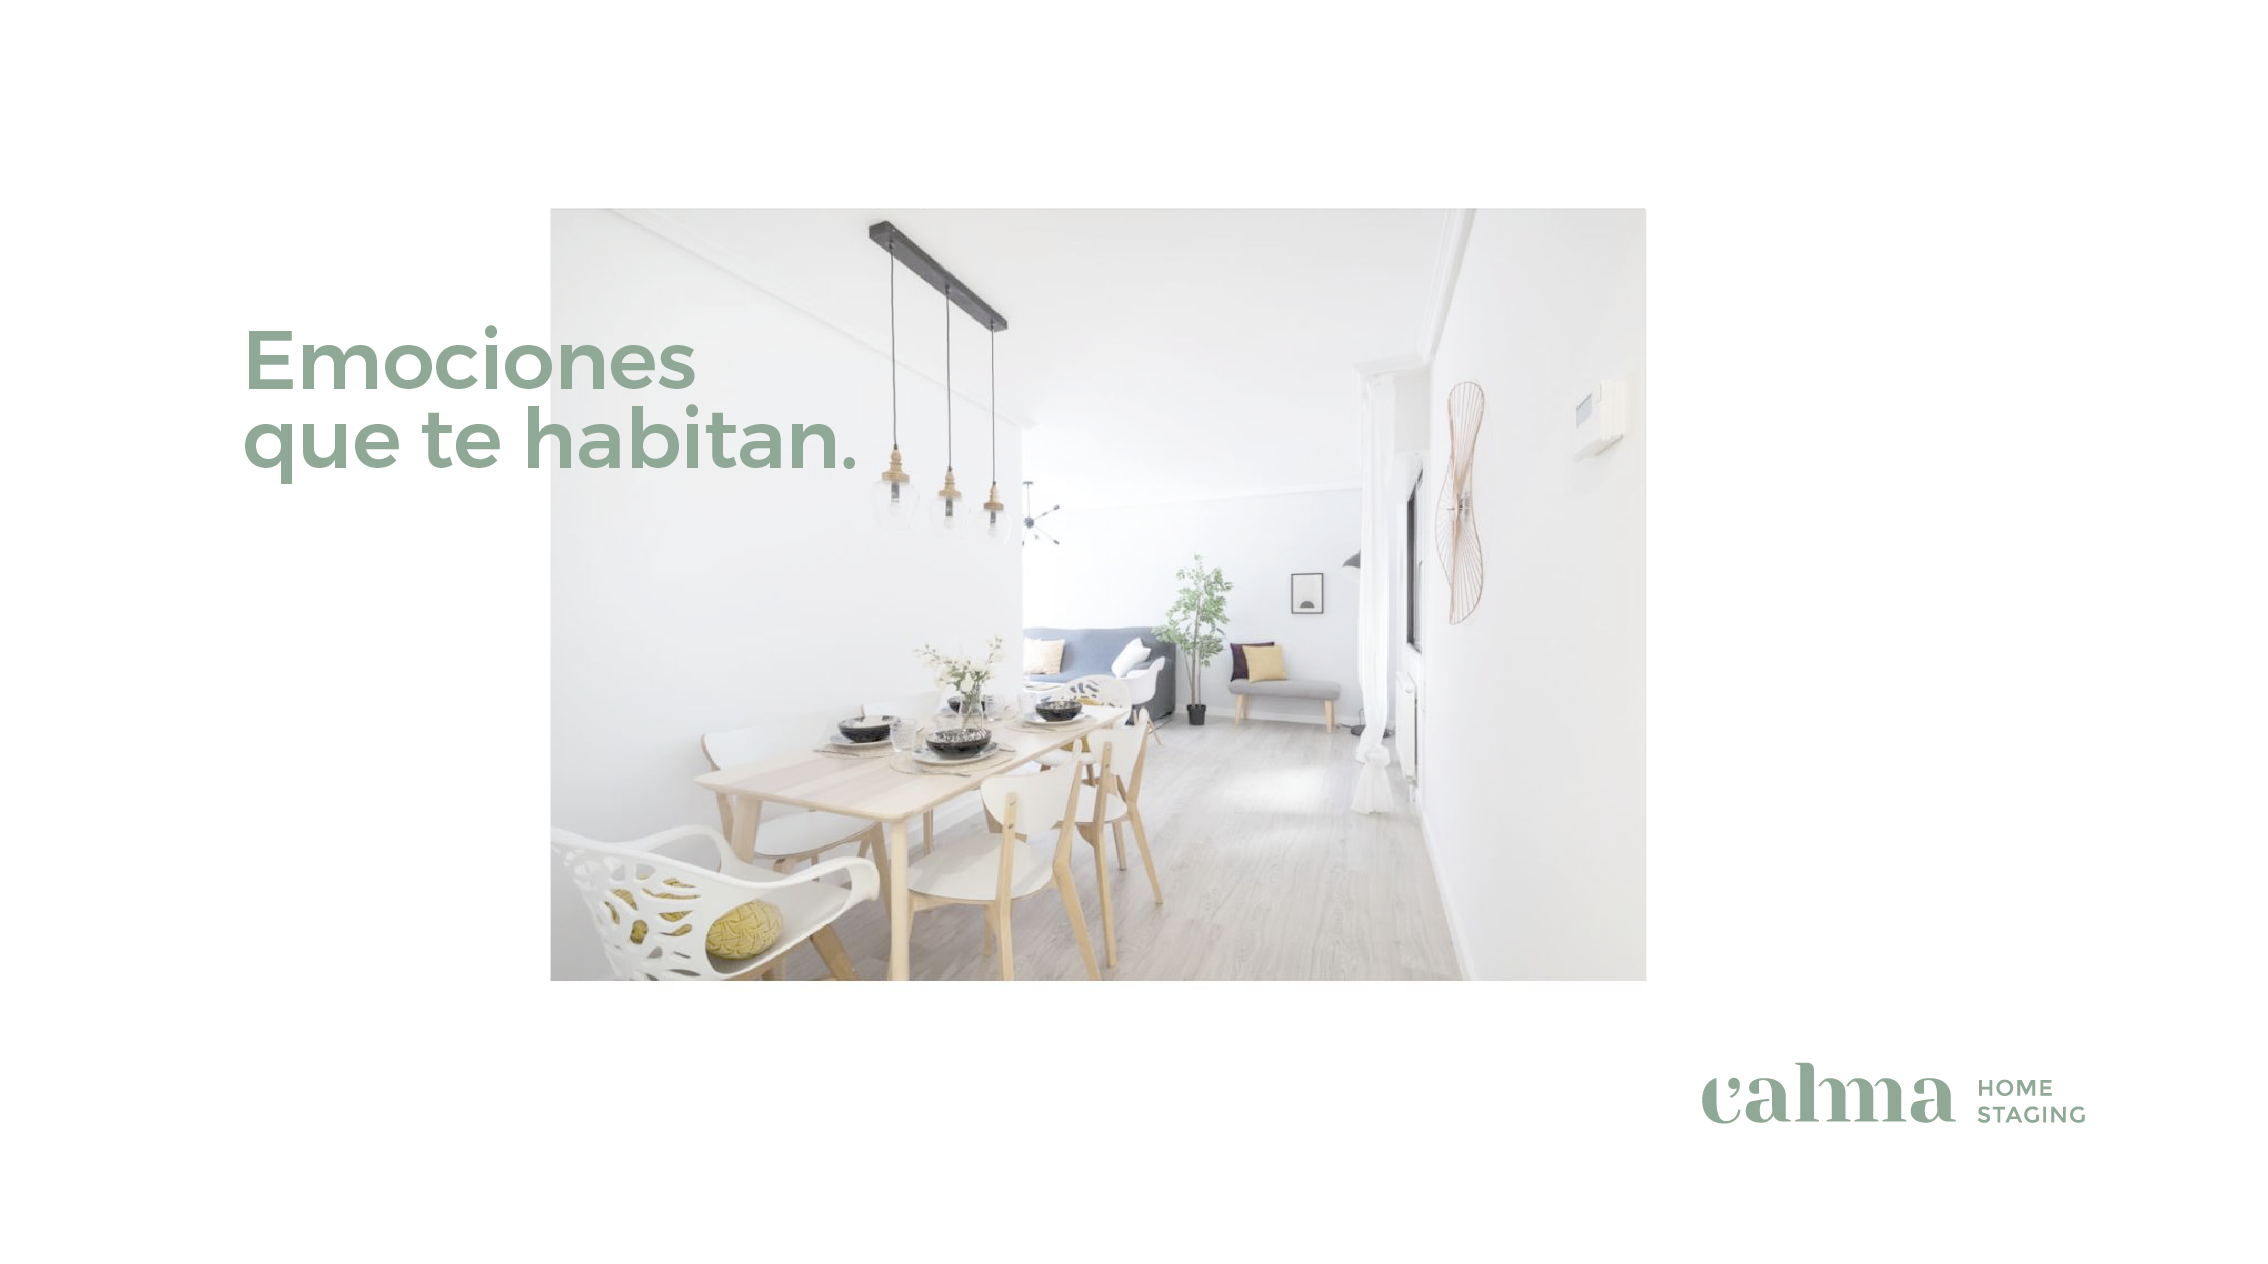 Calma Home Staging